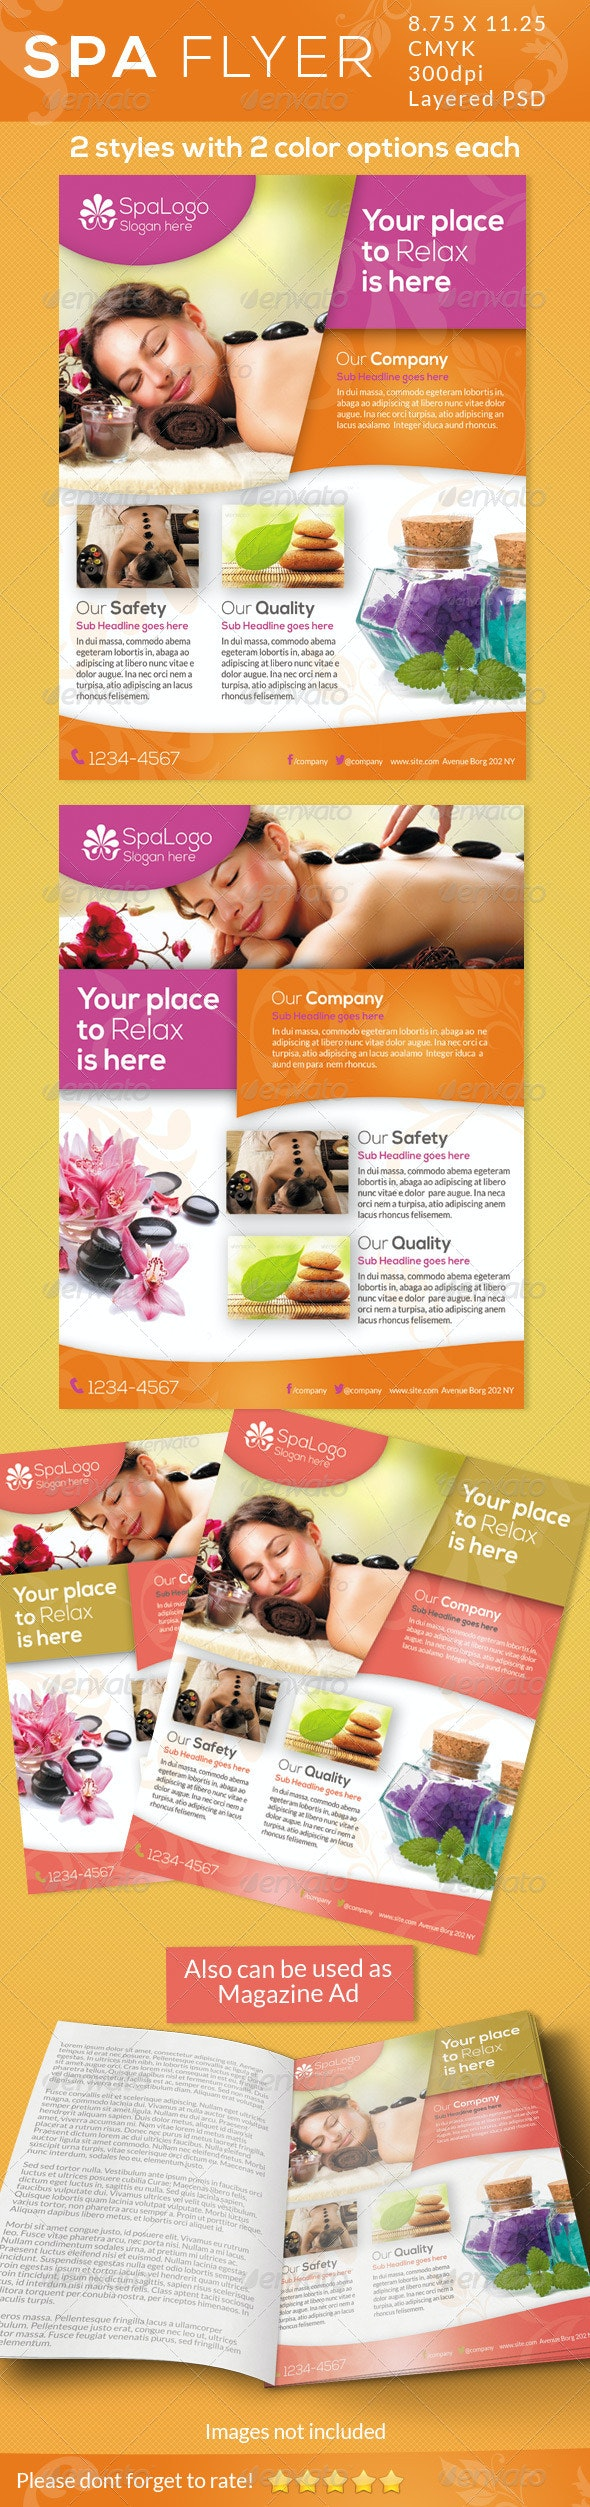 Spa Flyers / Print Ad - Commerce Flyers